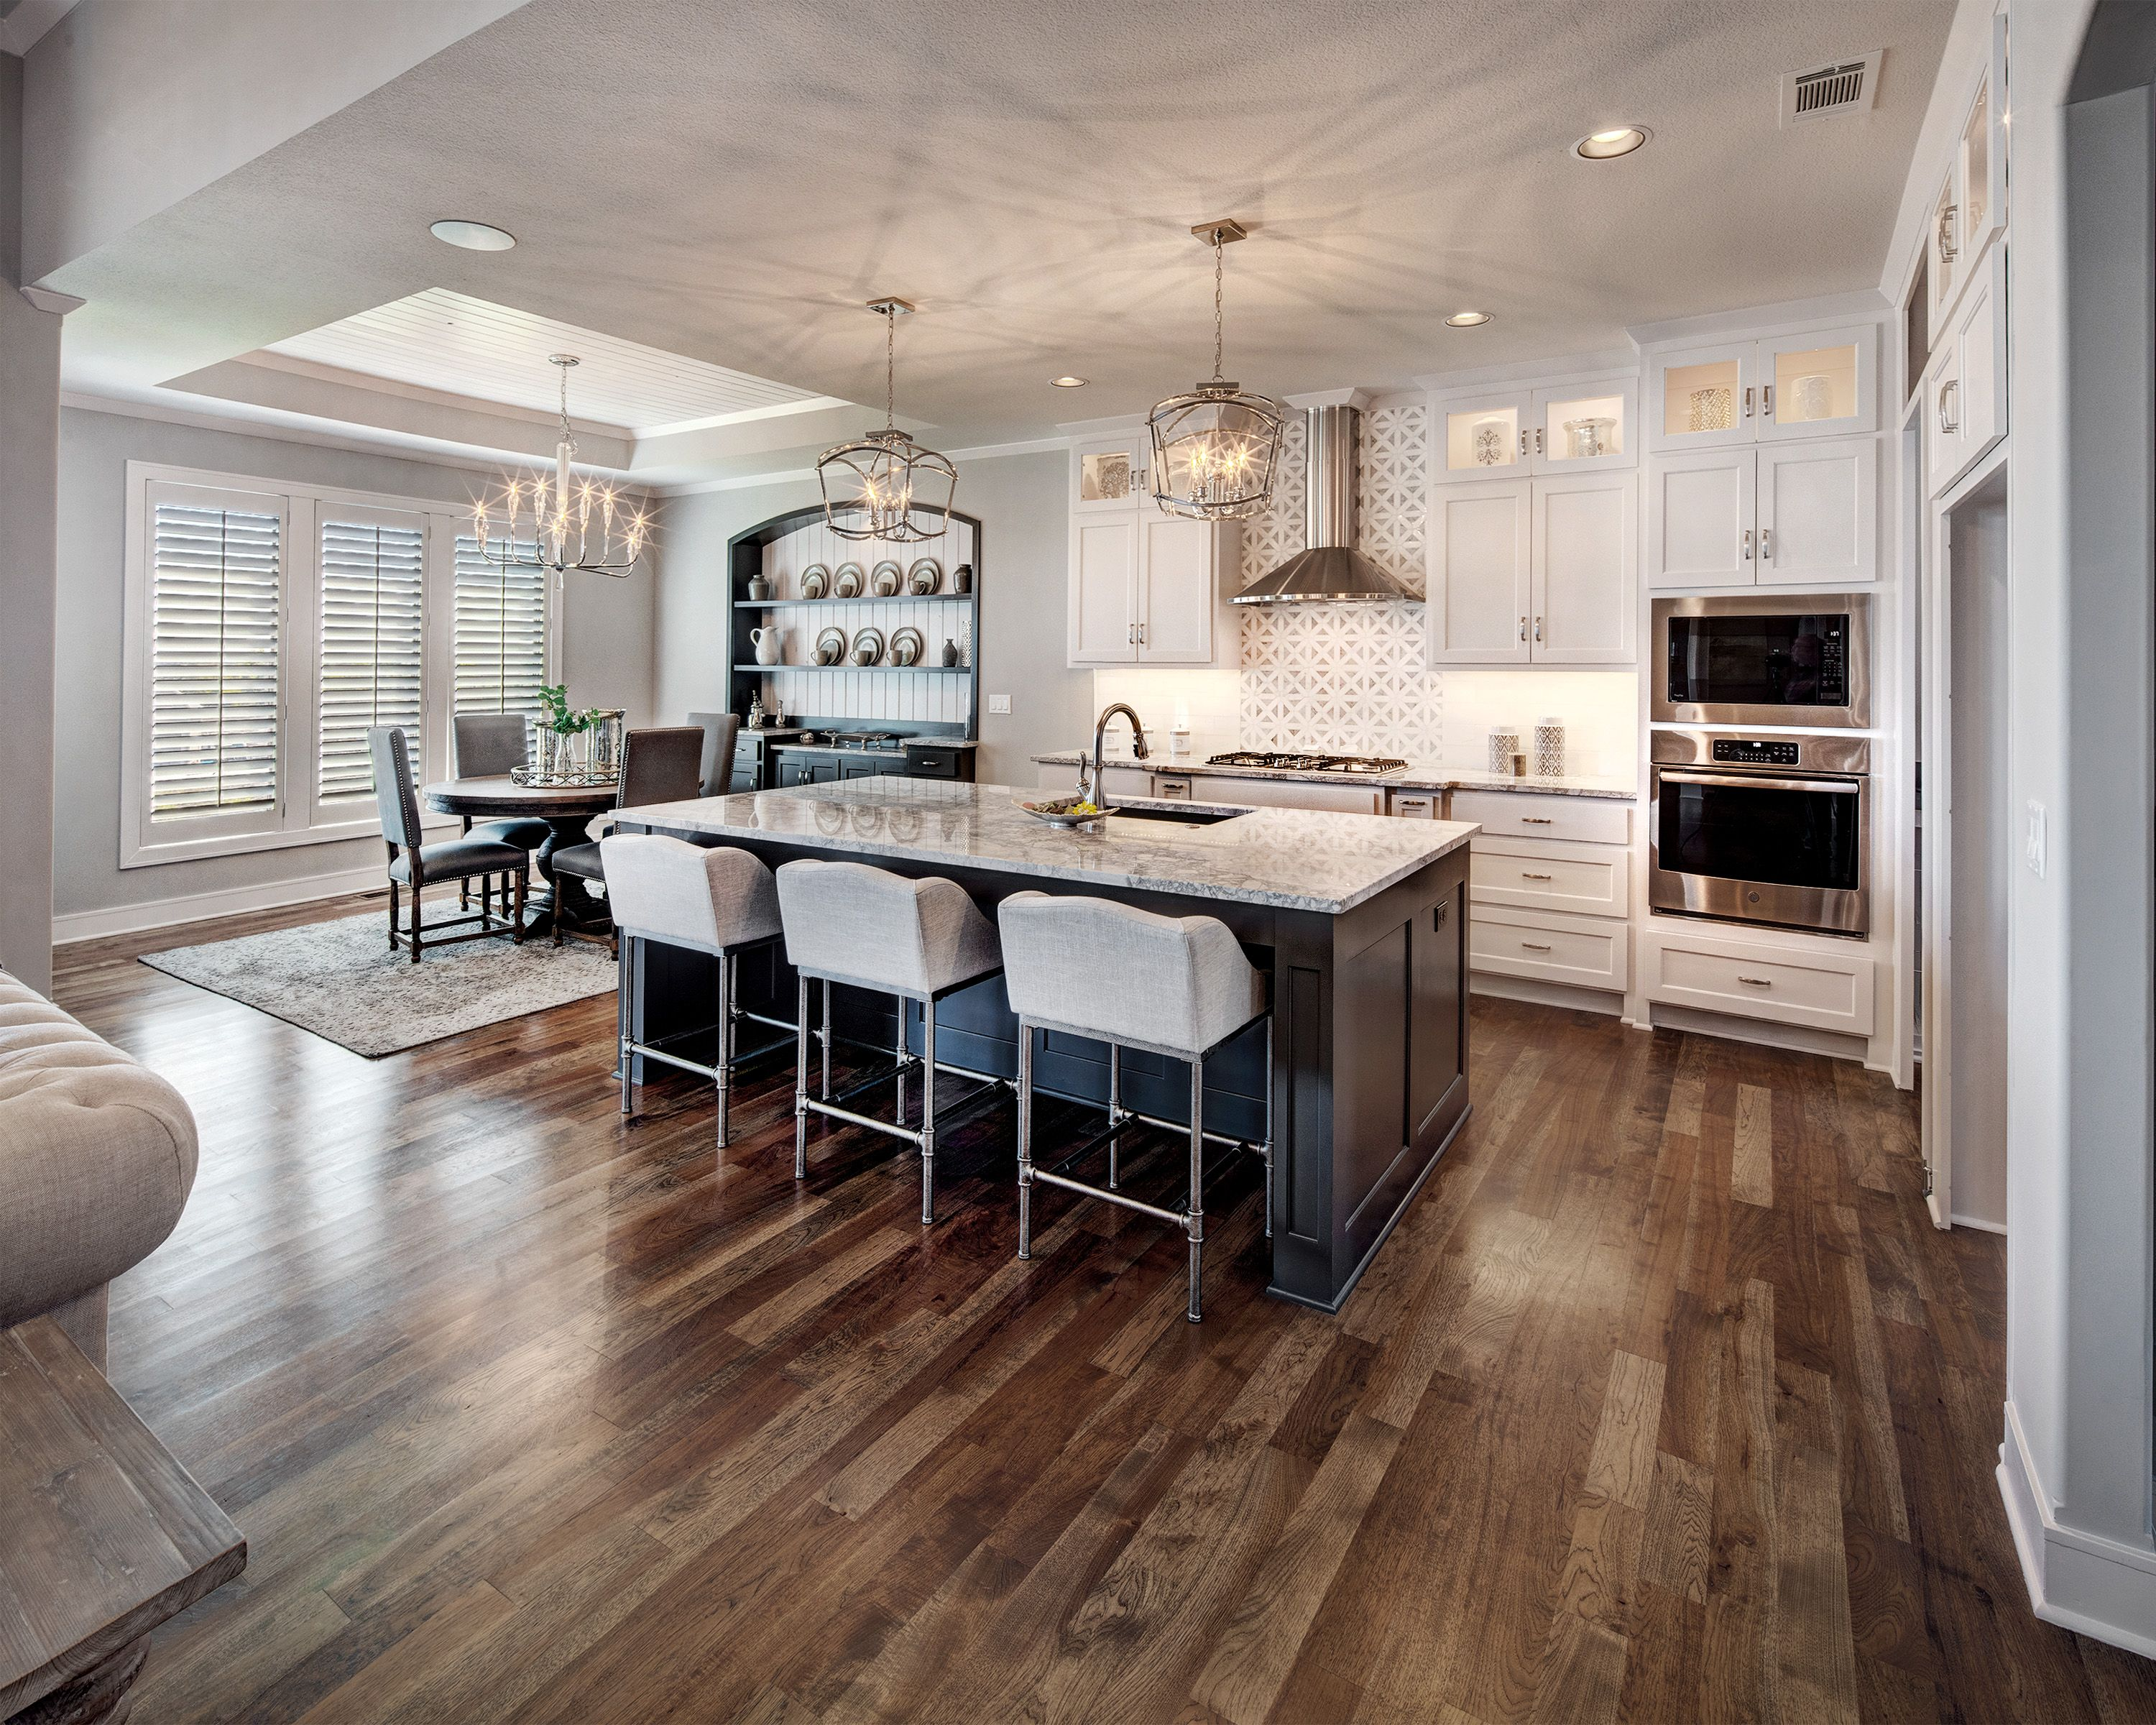 Interior Design Shiplap Ceiling Lighting New Home Ideas Hardwood Floors Painted Cabinets Reverse 1 5 Fl Kitchen Remodel Kitchen Remodeling Projects Home